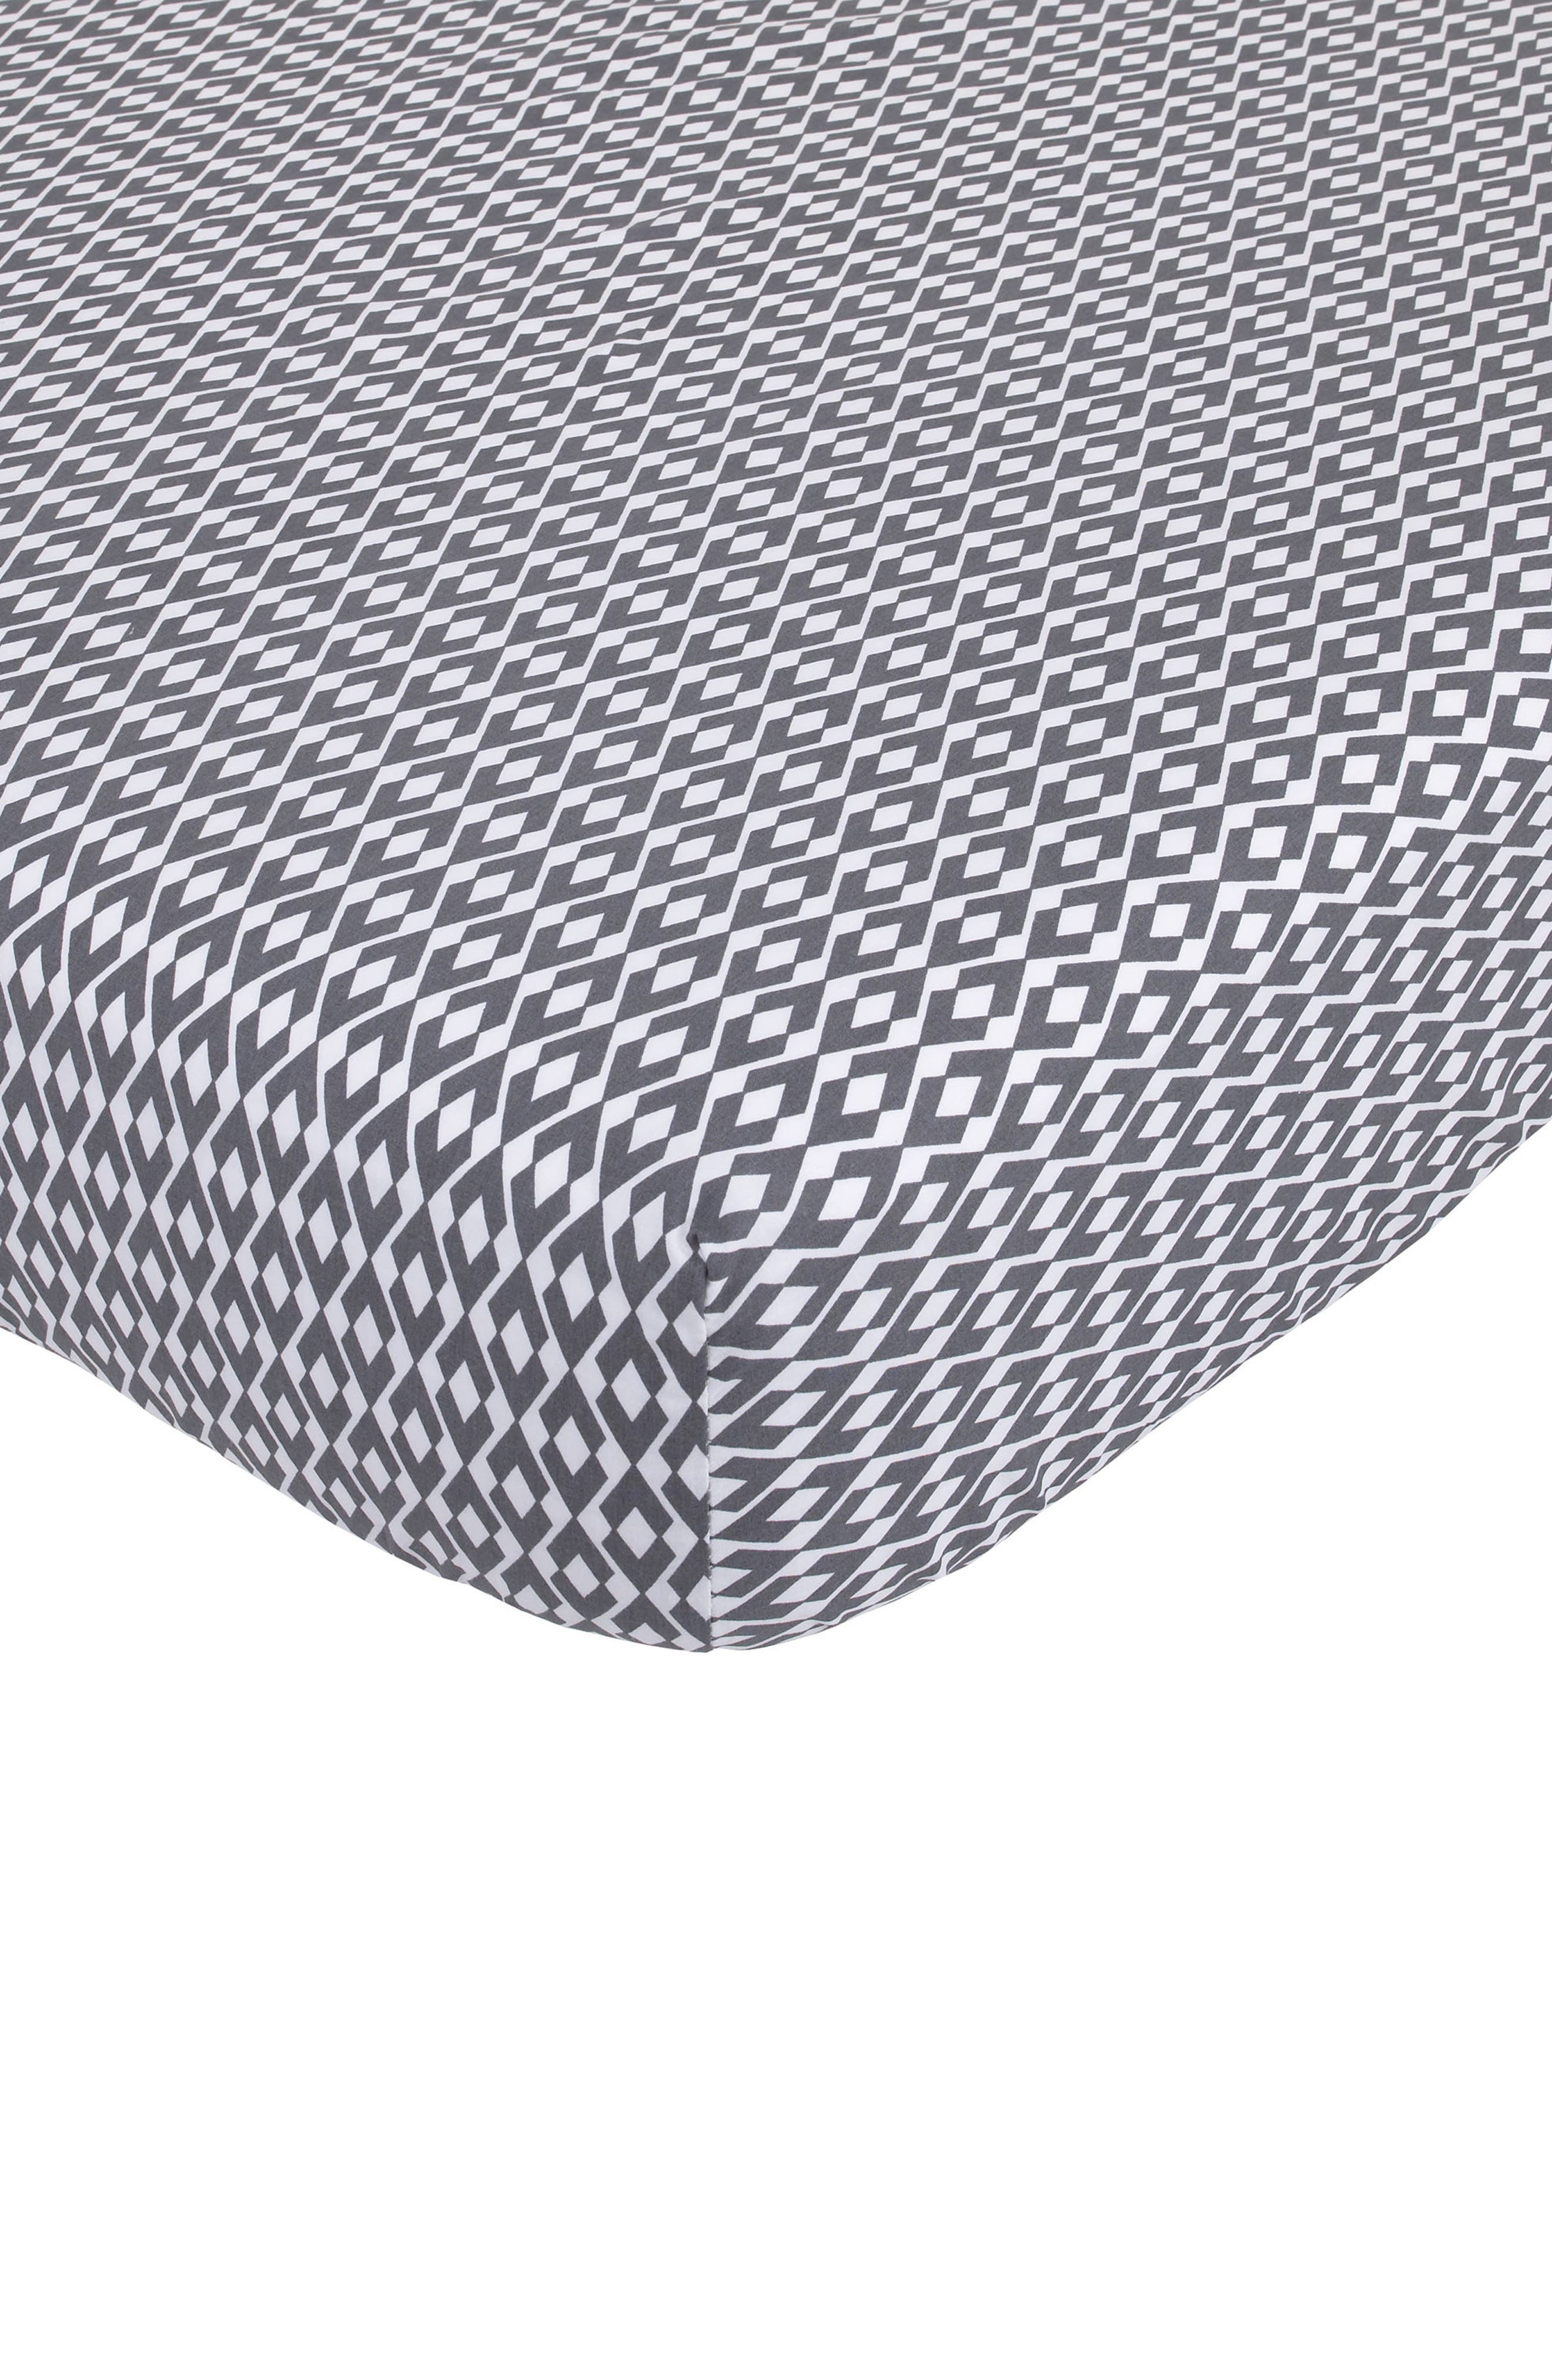 Main Image - Petunia Pickle Bottom Southwest Skies Fitted Crib Sheet